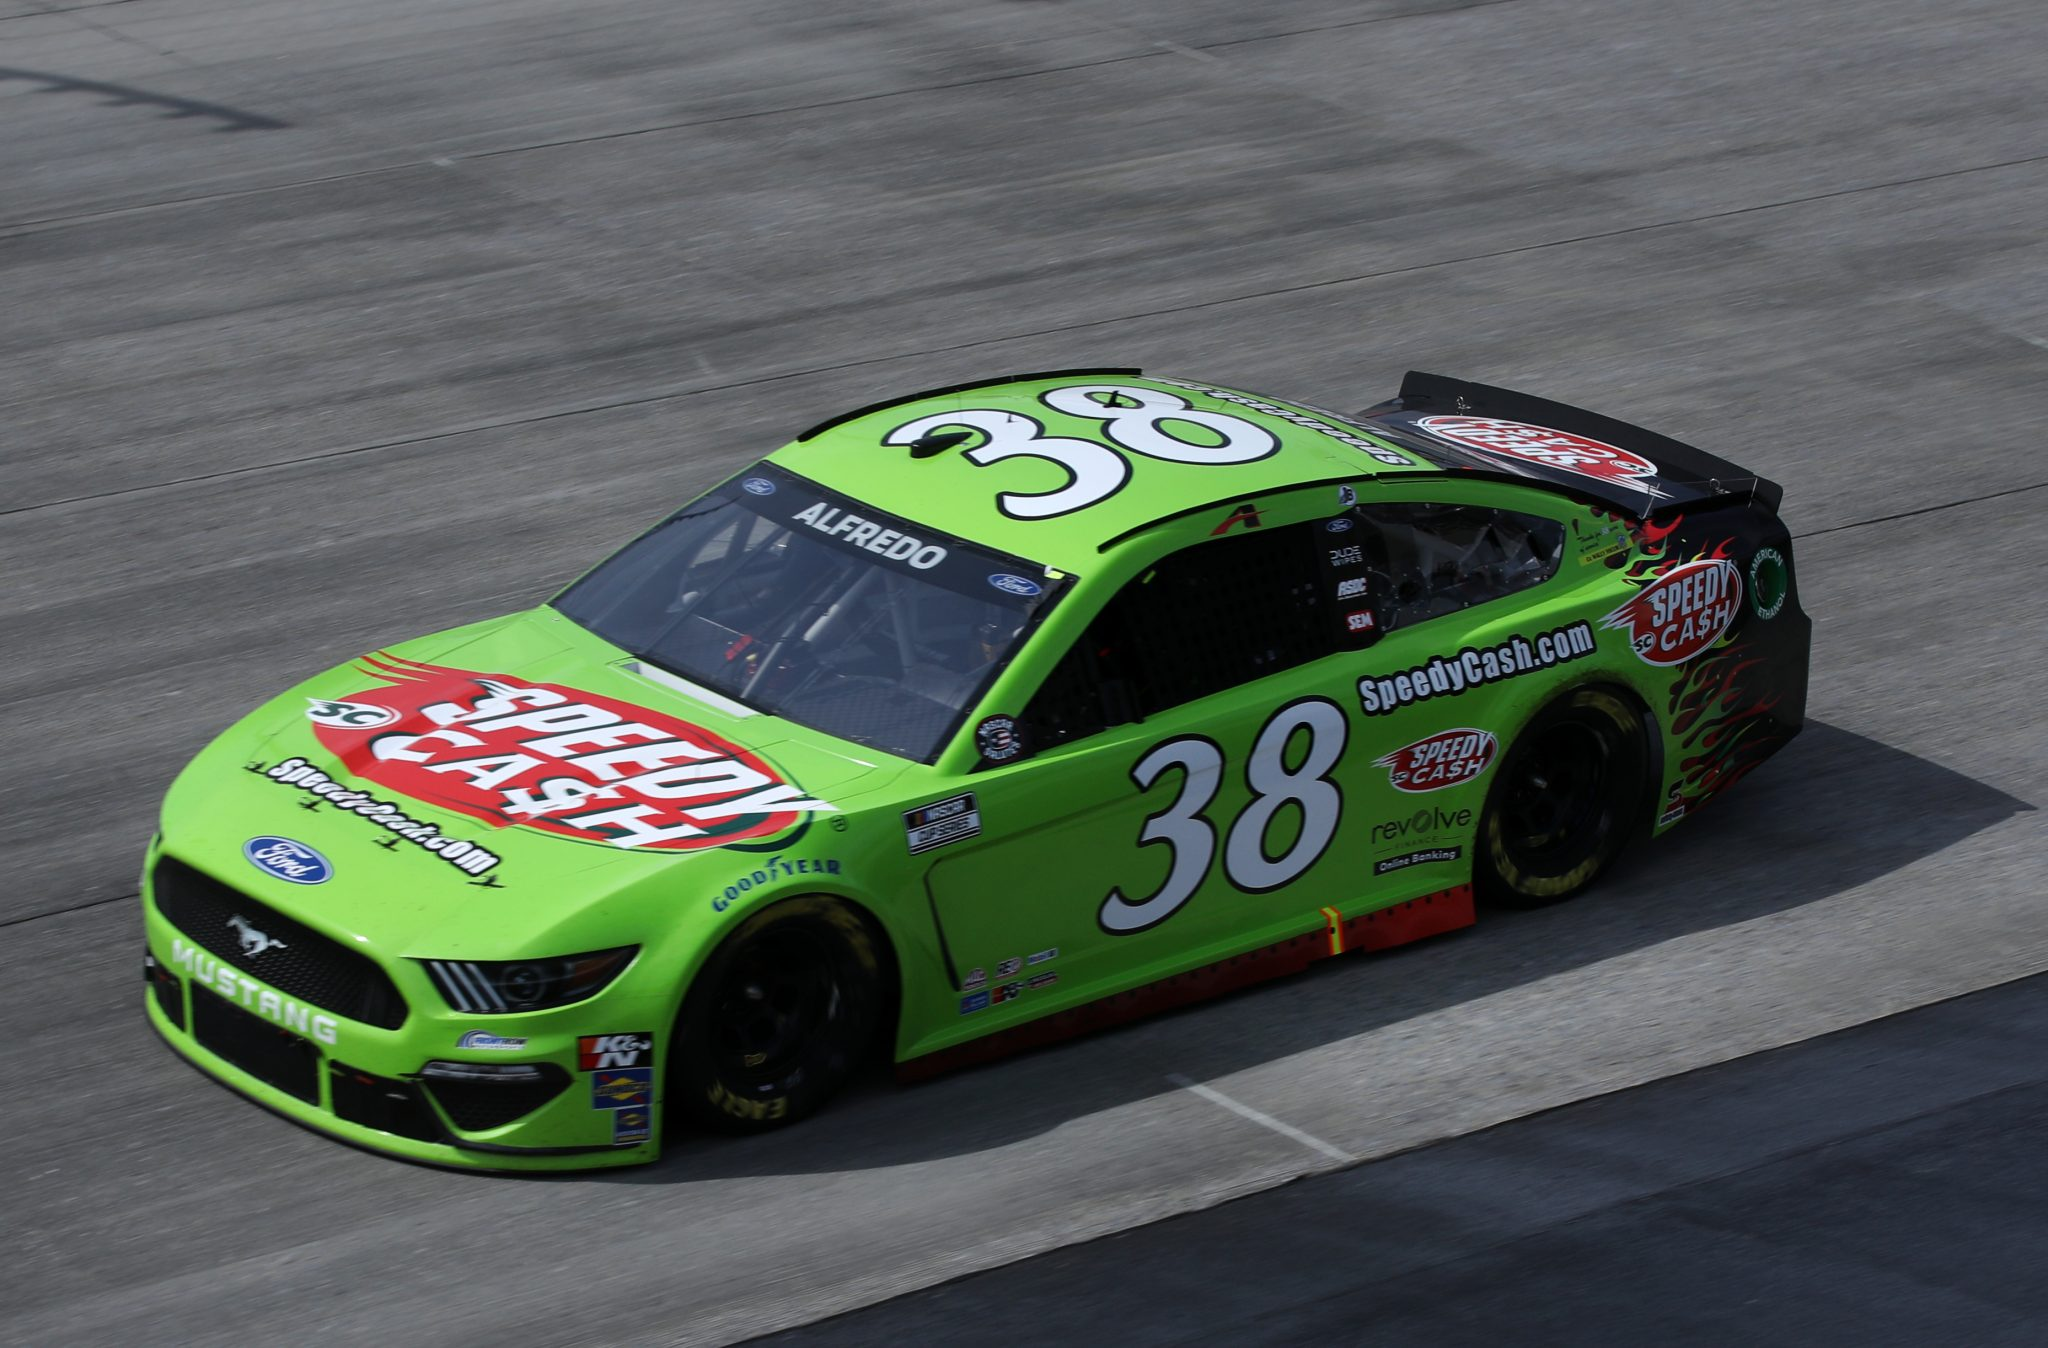 DOVER, DELAWARE - MAY 16: Anthony Alfredo, driver of the #38 Speedy Cash Ford, races during the NASCAR Cup Series Drydene 400 at Dover International Speedway on May 16, 2021 in Dover, Delaware. (Photo by Sean Gardner/Getty Images) | Getty Images